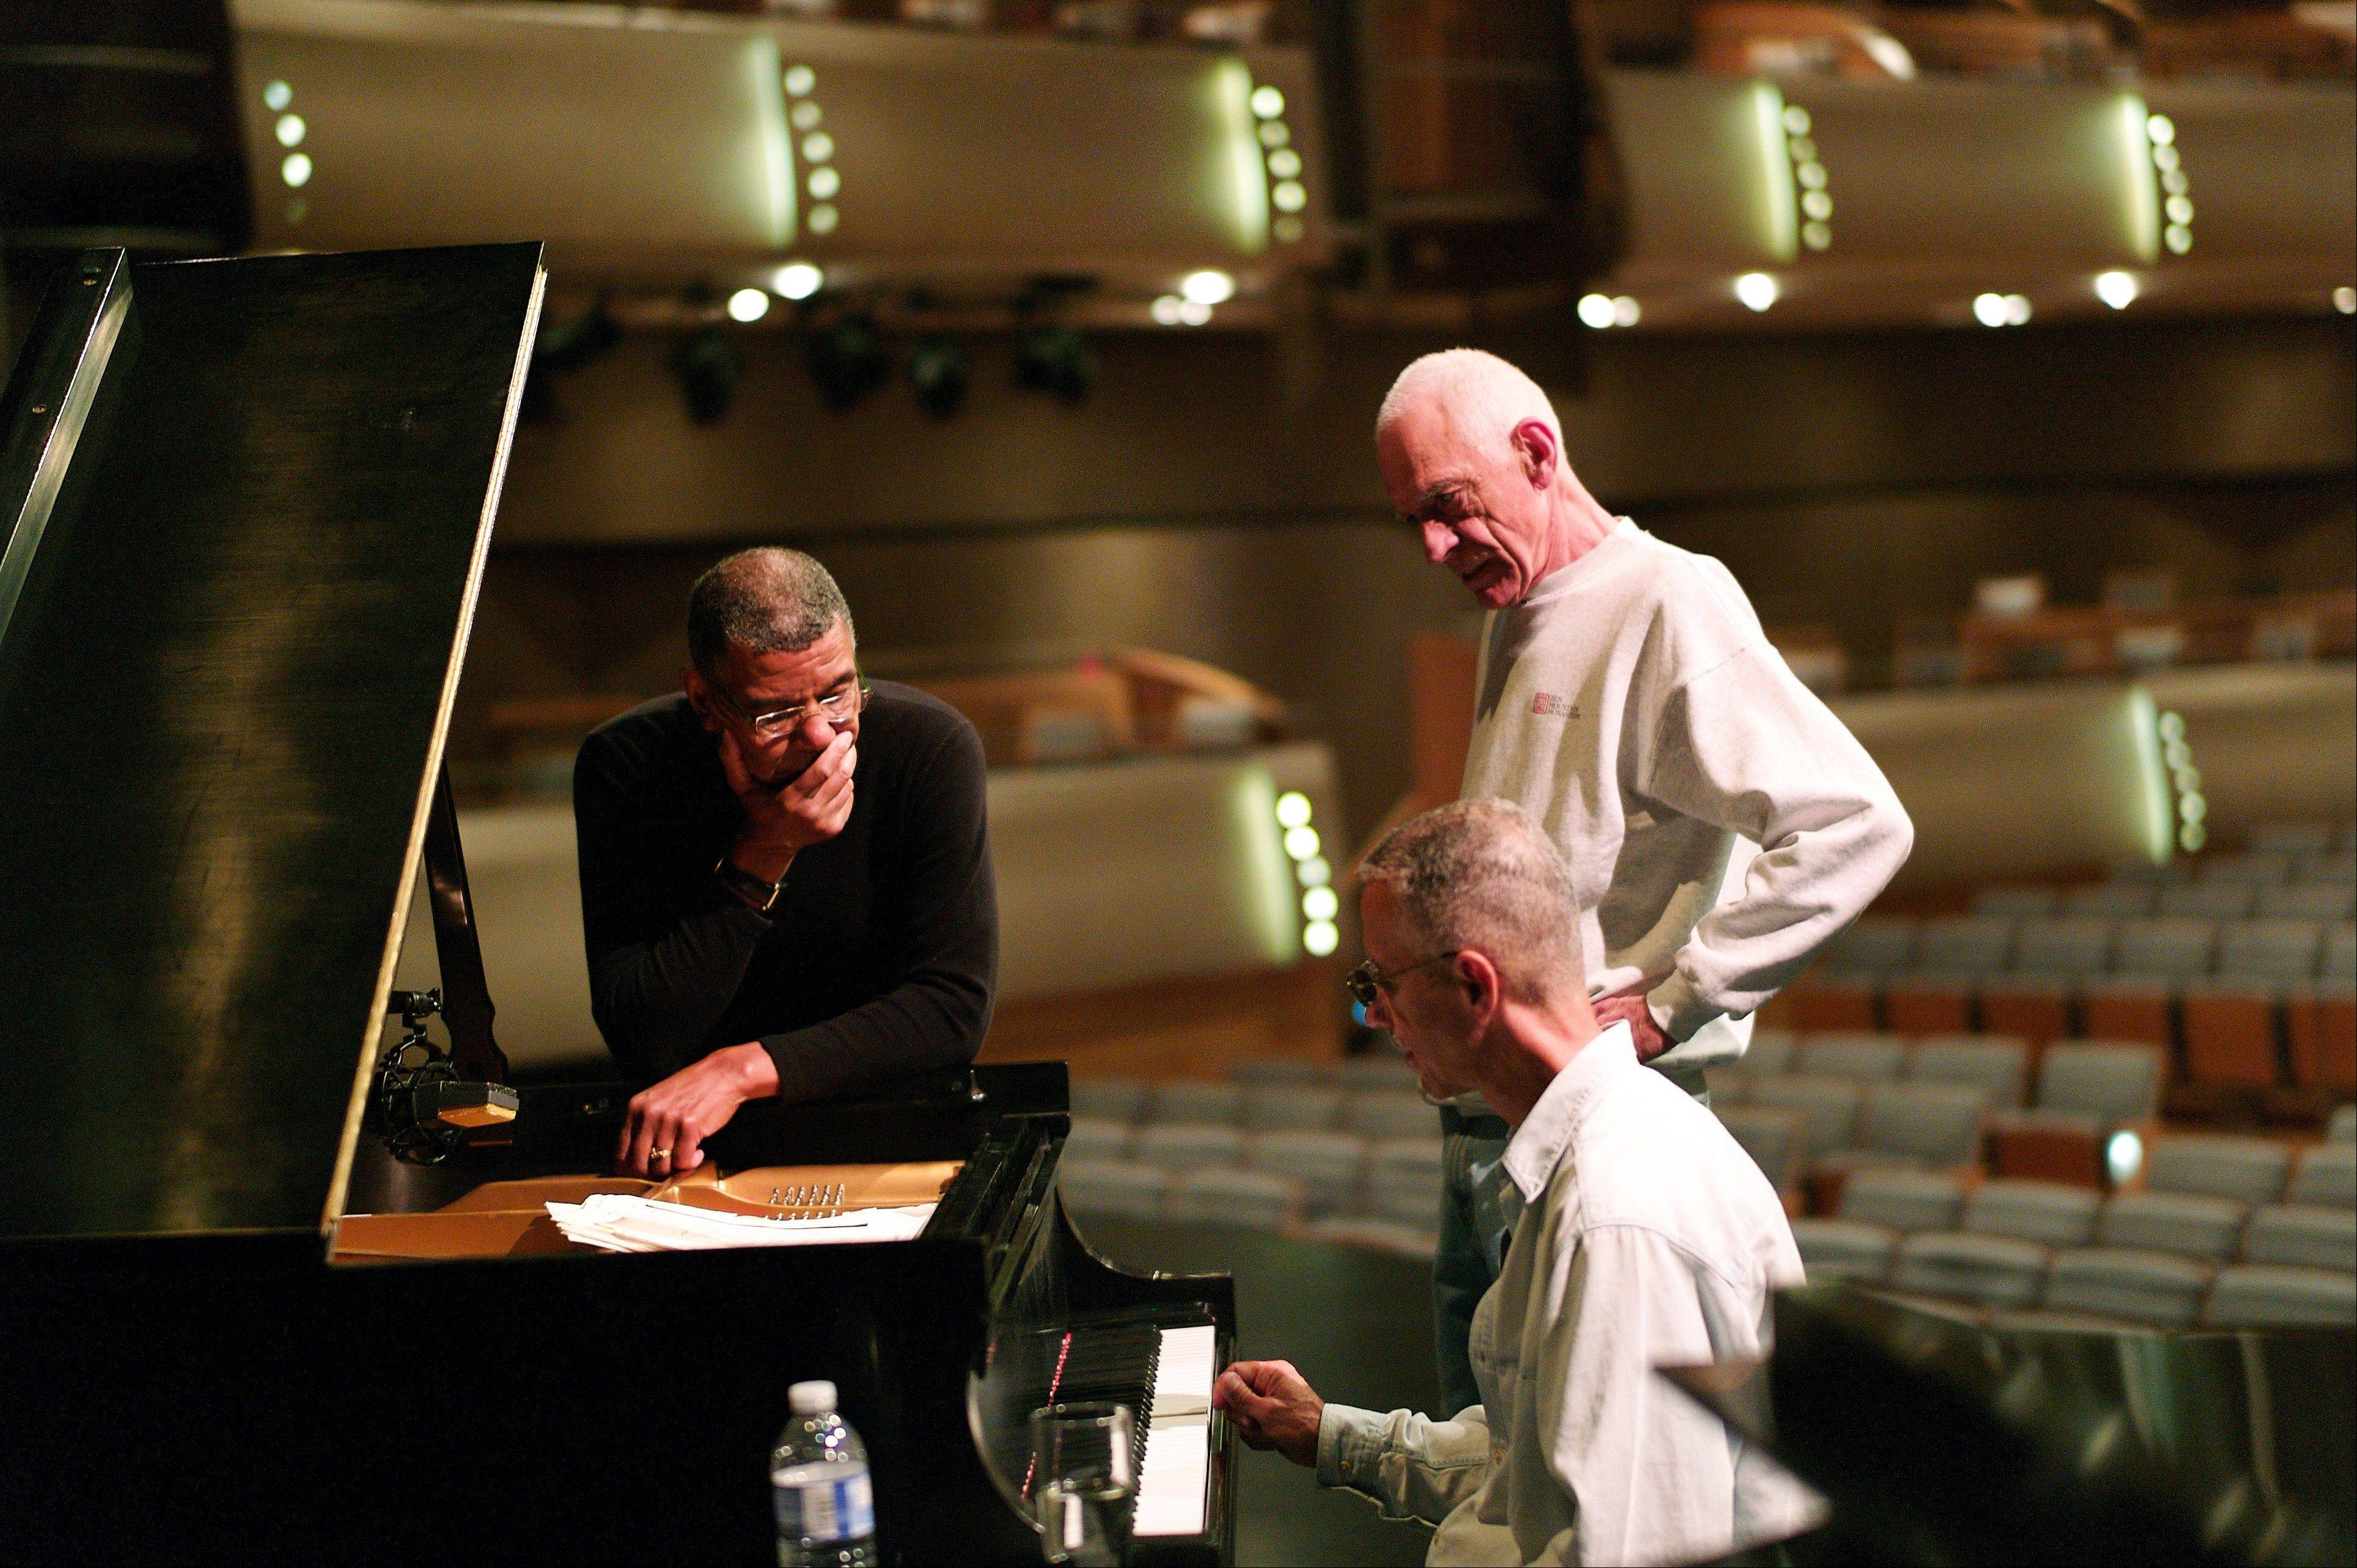 The Keith Jarrett Trio -- Keith Jarrett, seated, Jack DeJohnette, left, and Gary Peacock -- around the piano on a stage at the Four Seasons Center in Toronto. Jarrett's main focus this year has been his Standards trio with drummer DeJohnette and bassist Peacock, which is celebrating its 30th anniversary.